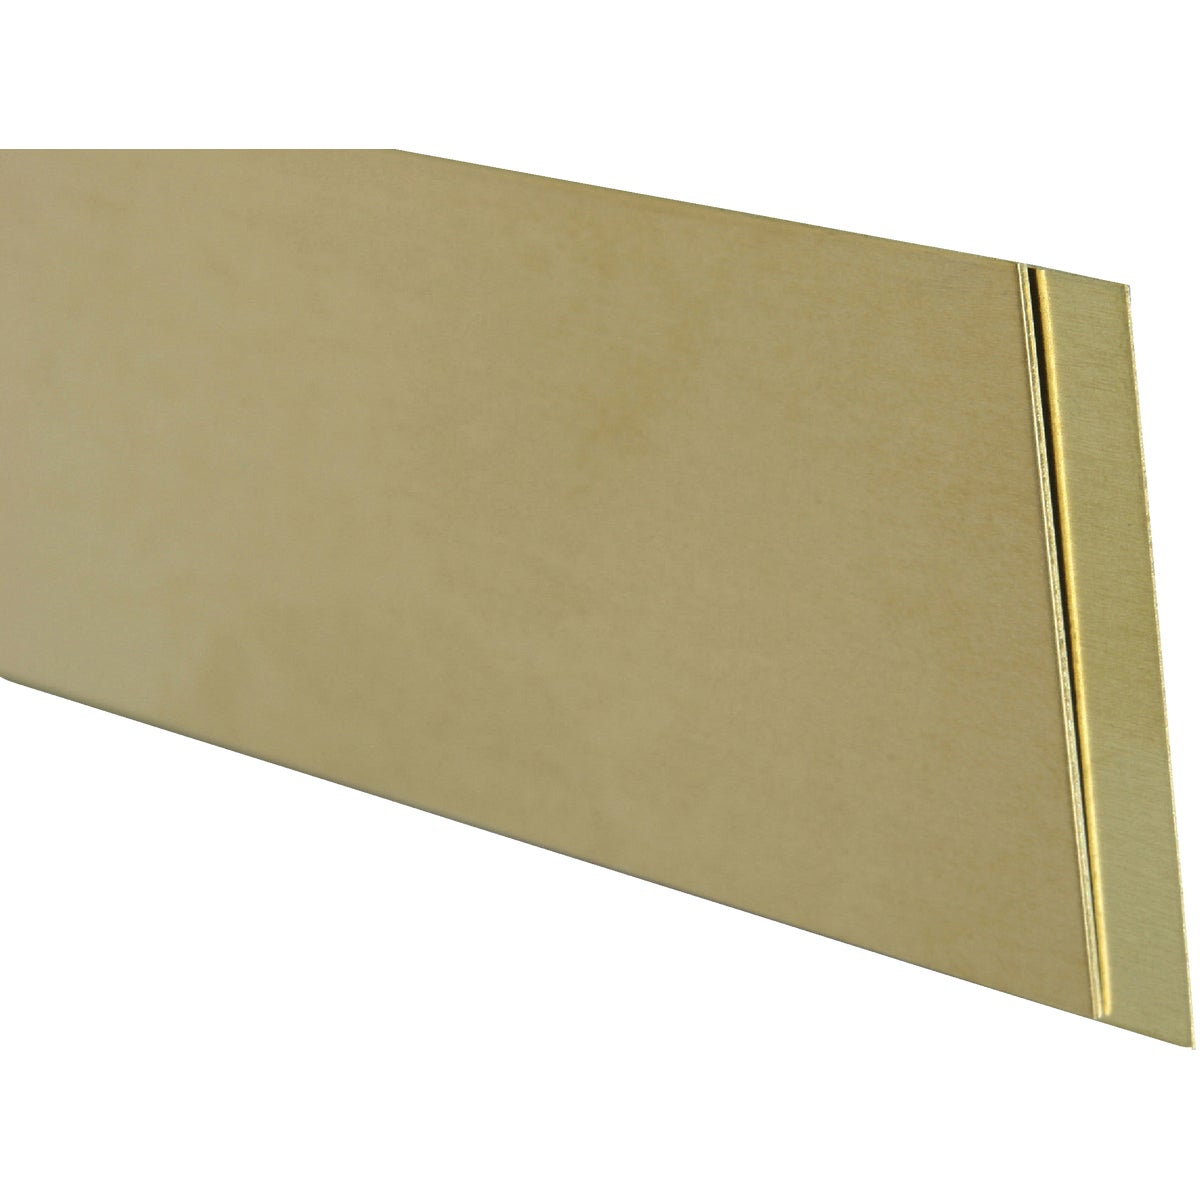 .064X1X12 BRASS STRIP - 8248 by K&s Precision Metals